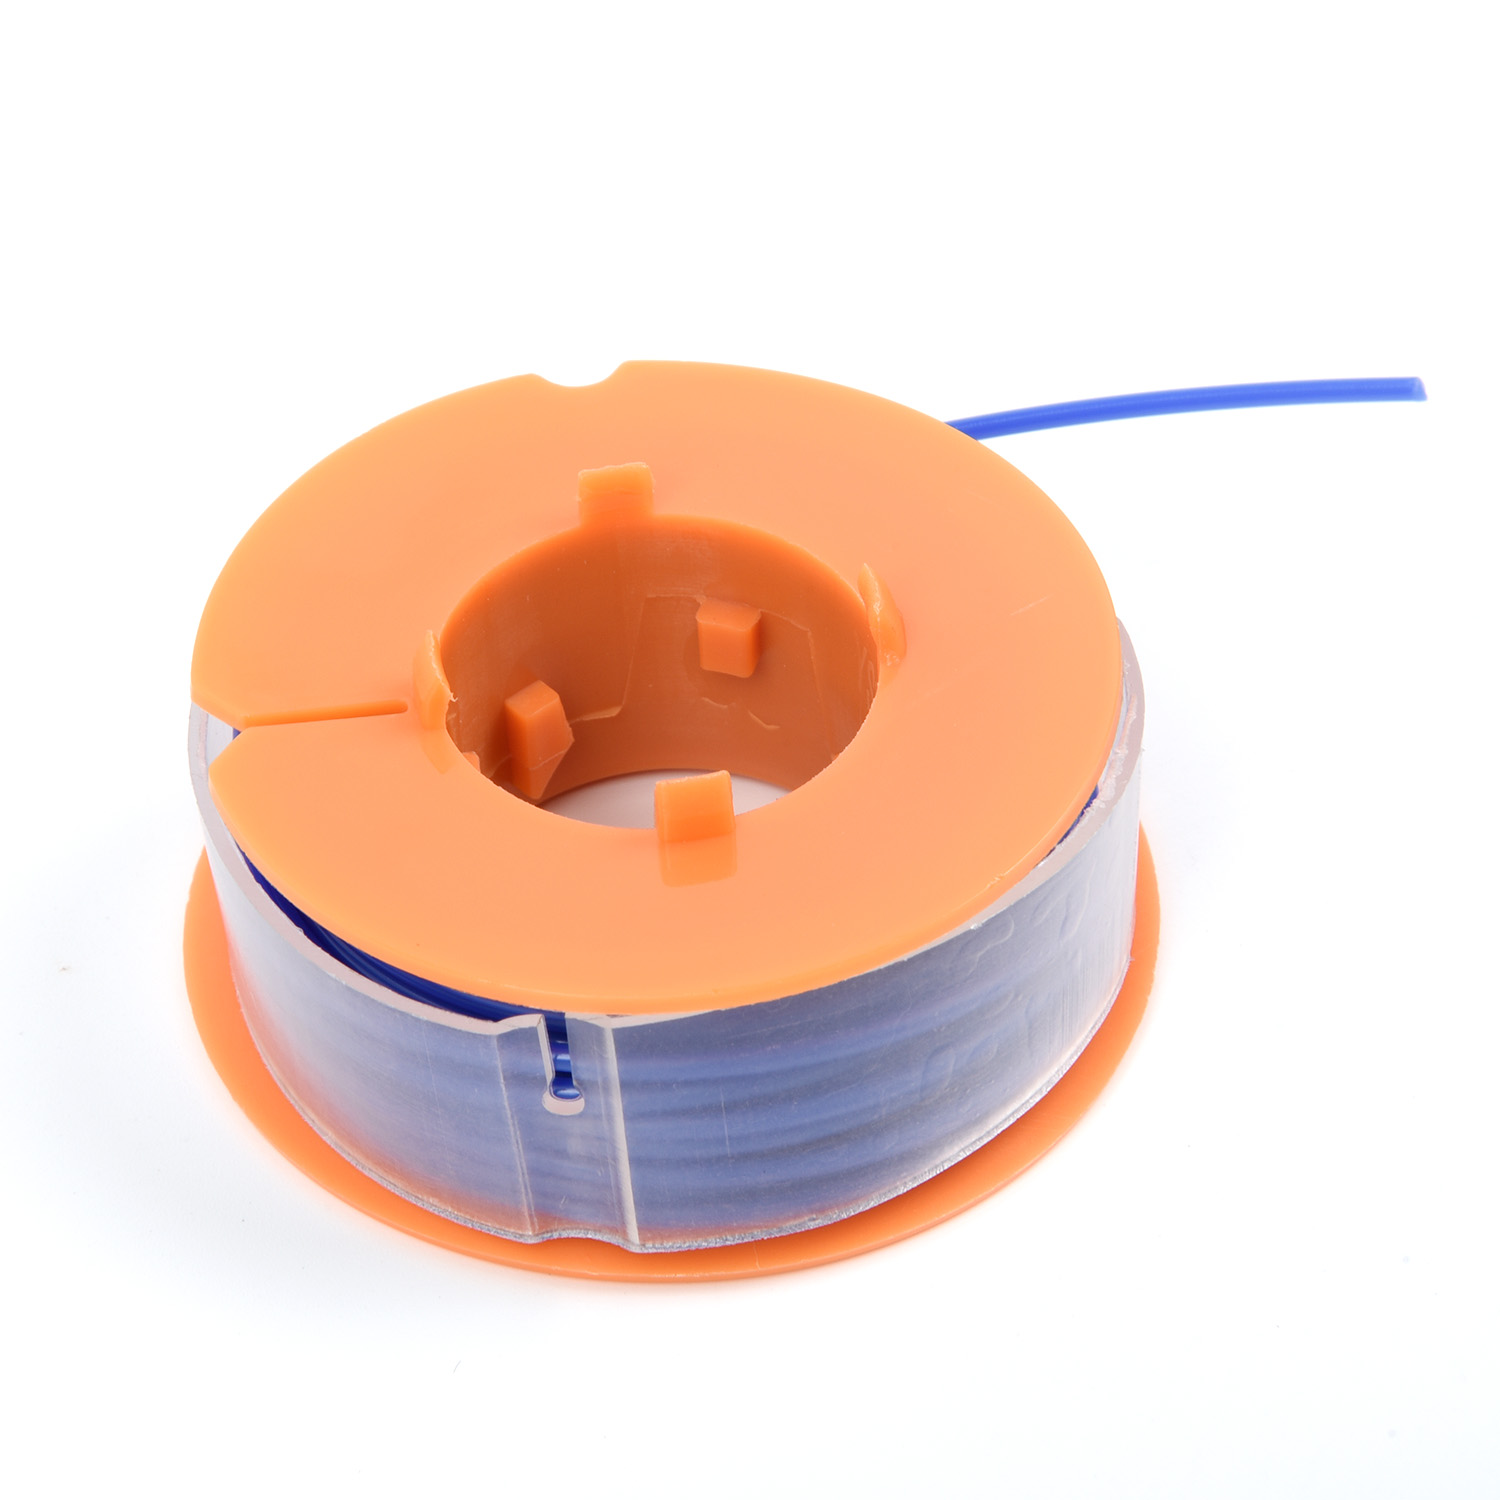 1*Electric Strimmer String Trimmer Head Spool Line ART 23 26 30 Combitrim/Easytrim/Combitrim For Bosch